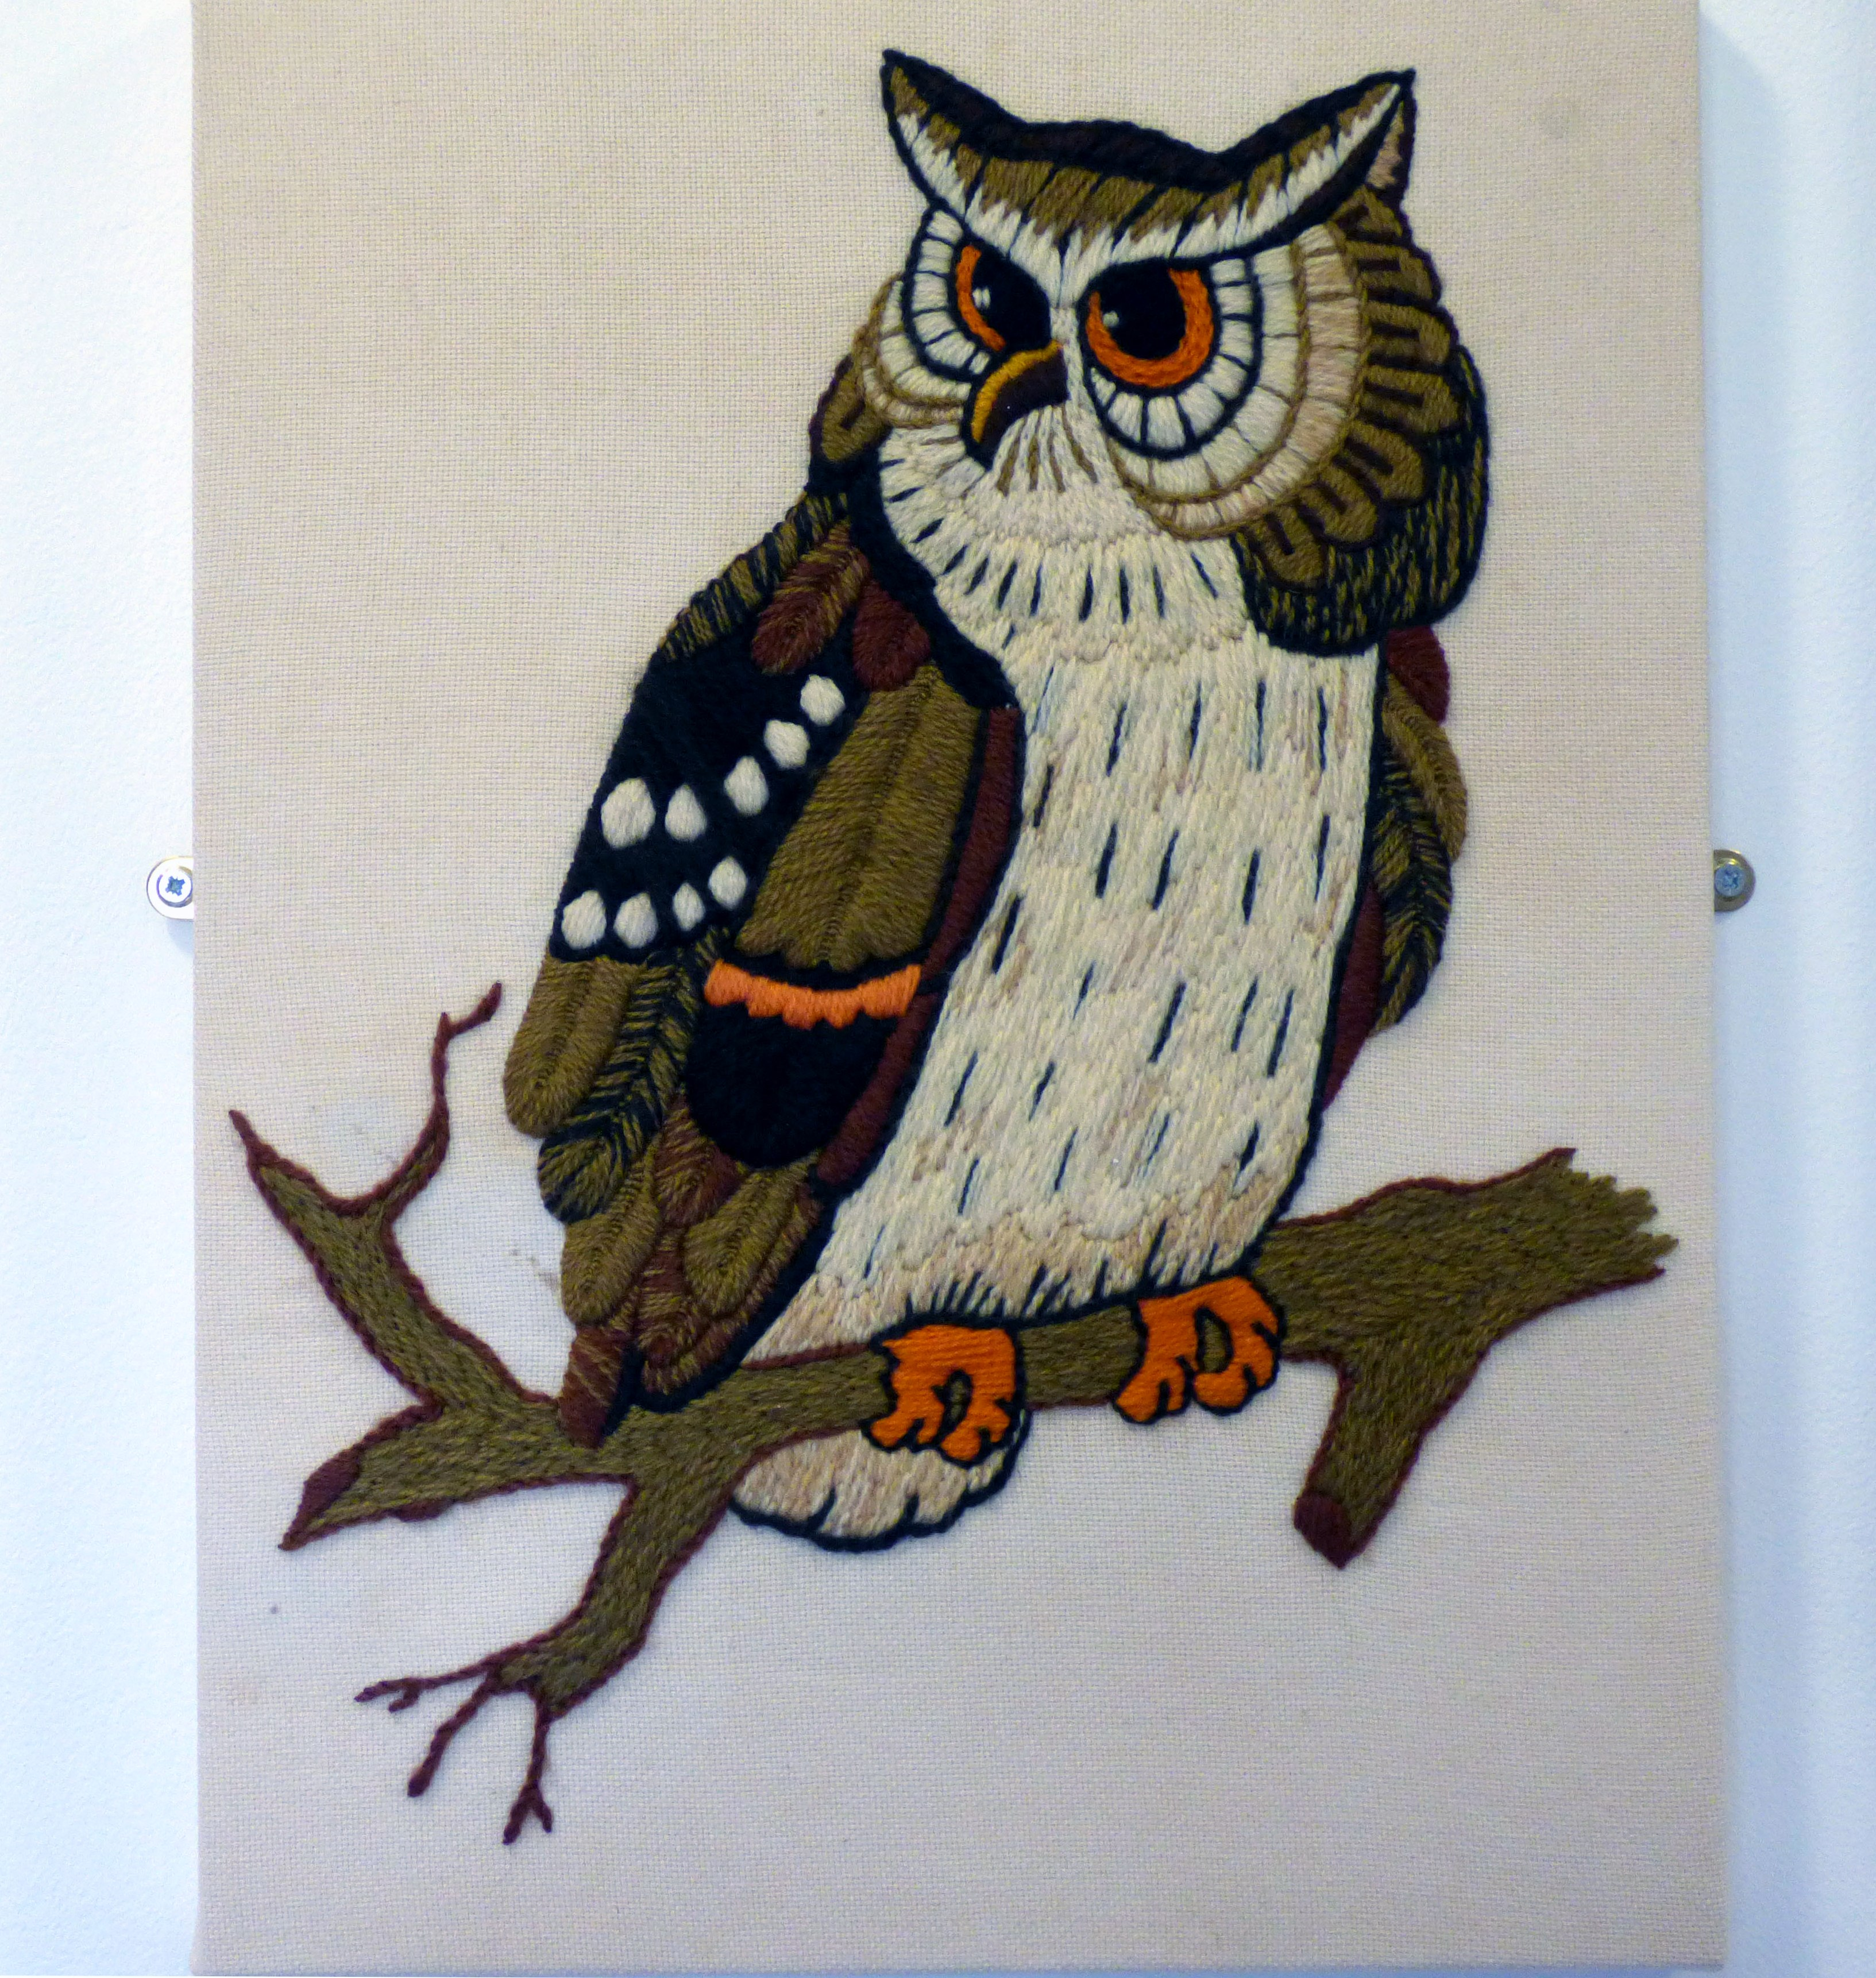 OWL by Sue Johnson, 1977, wool on cotton fabric, a first embroidery from a kit